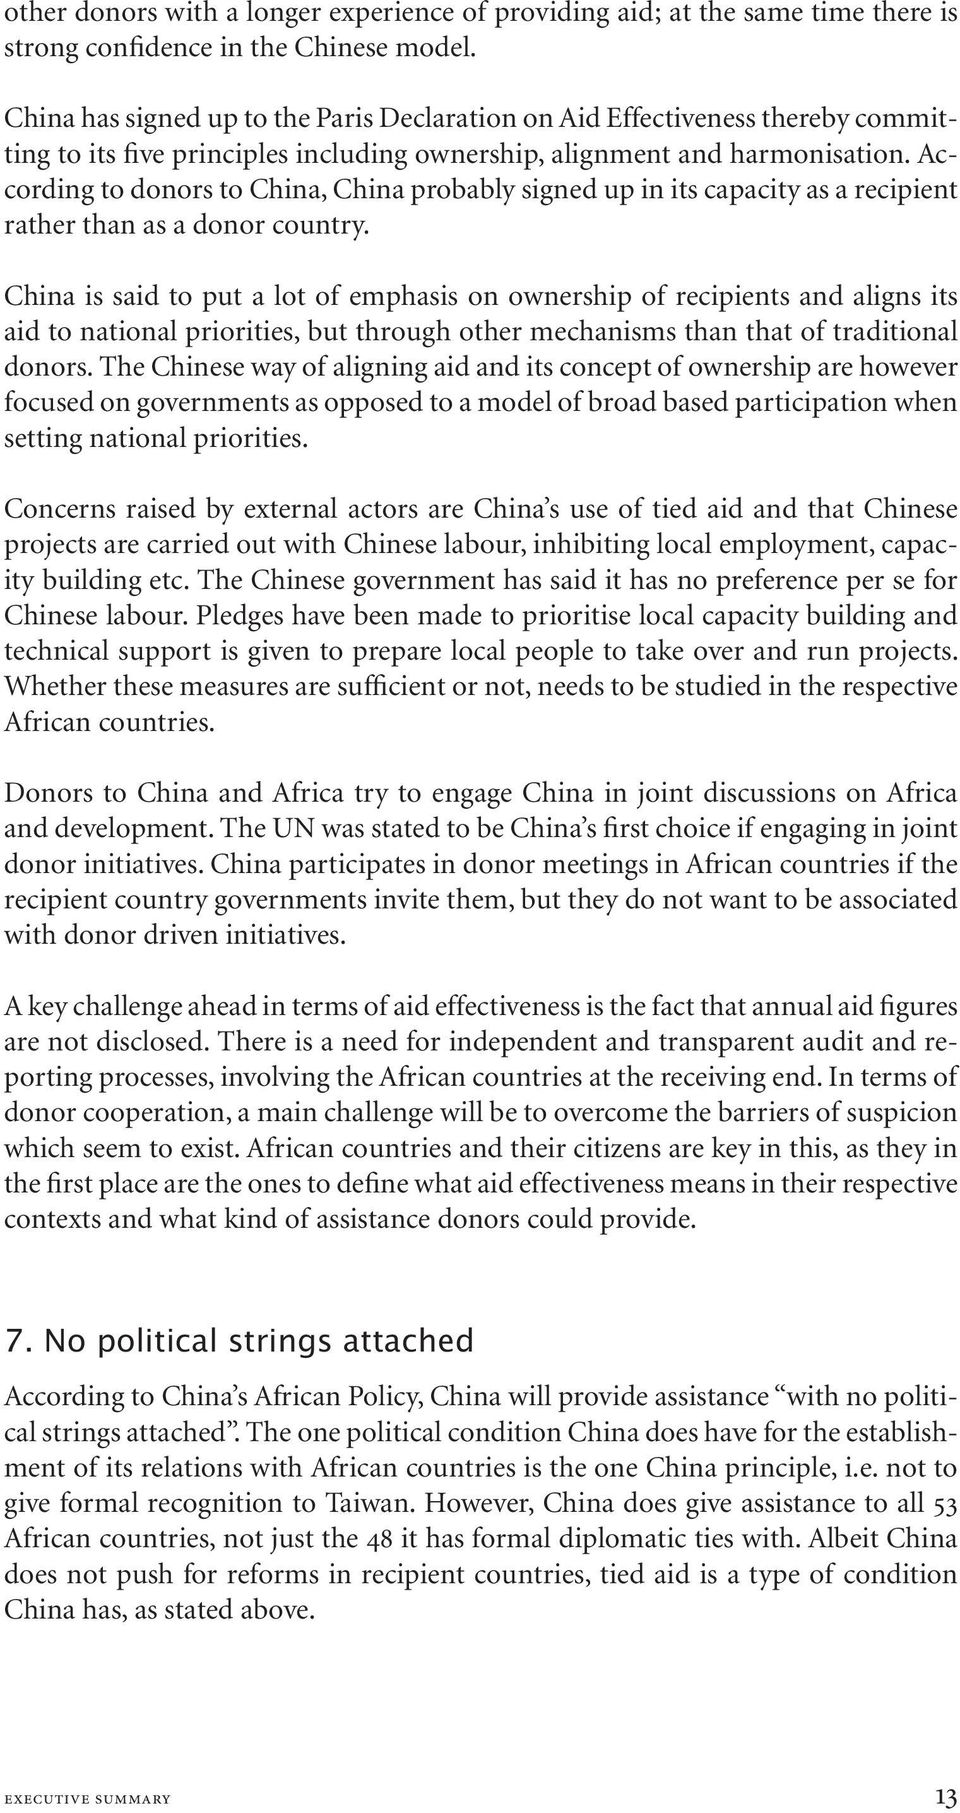 According to donors to China, China probably signed up in its capacity as a recipient rather than as a donor country.